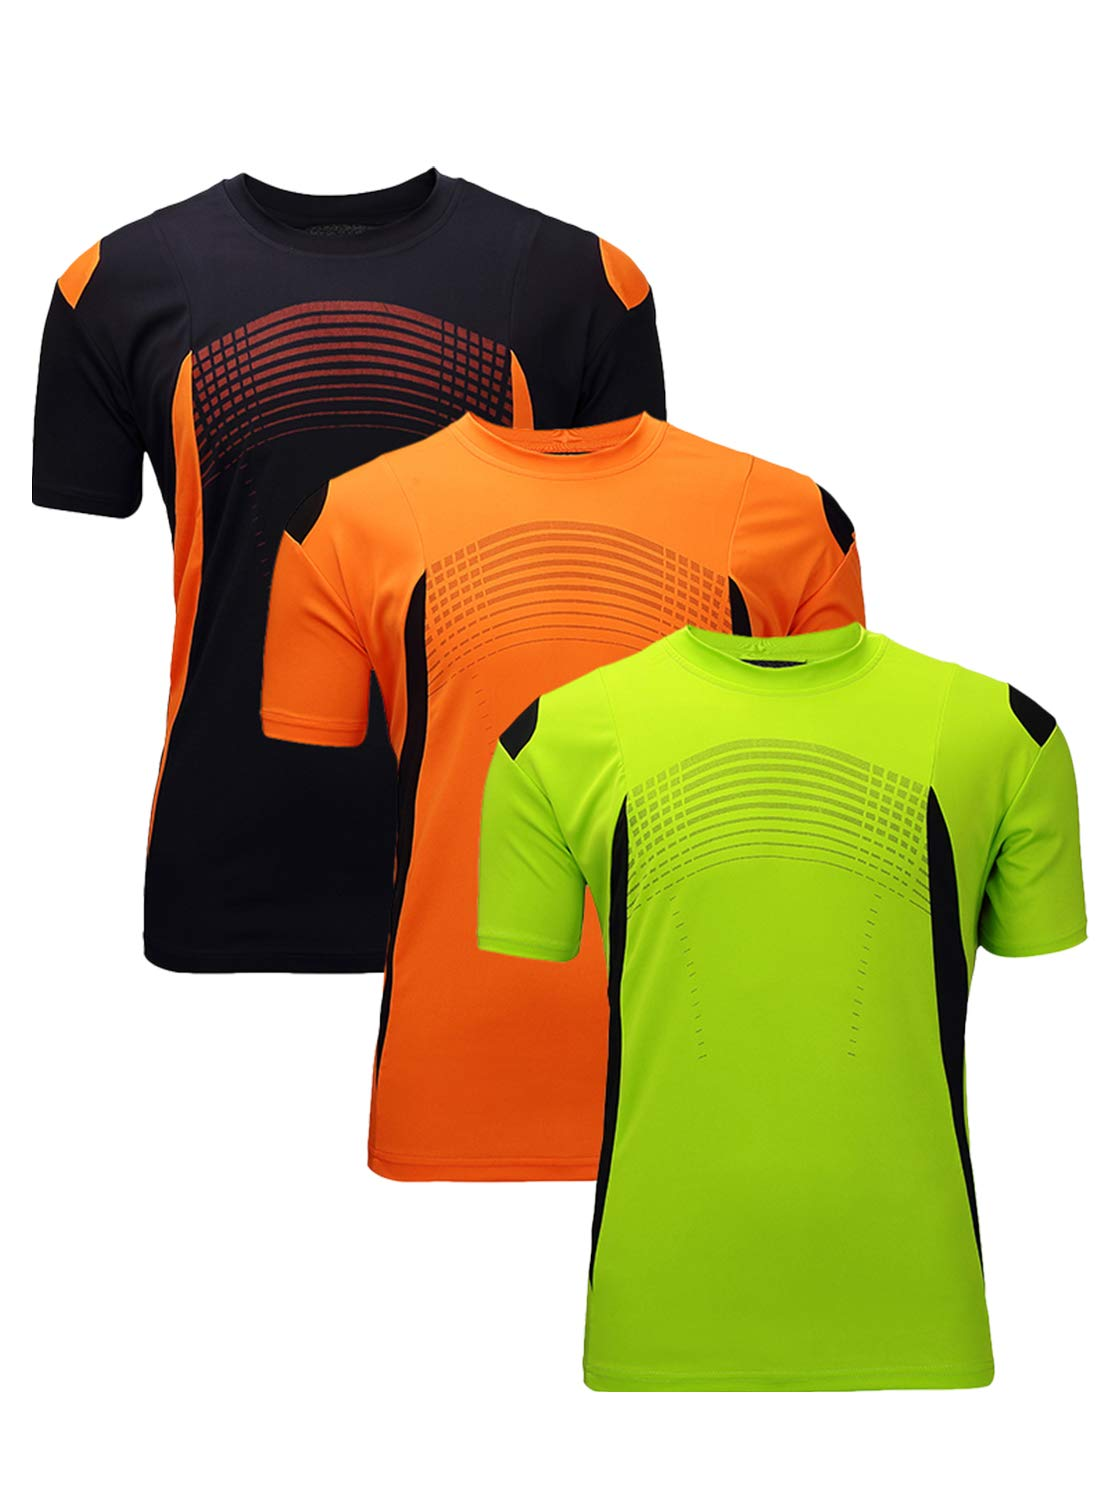 GEEK LIGHTING Men's Running Athletic Shirts,Quick Dry T Shirt(Green&Orange&Navy,XL)